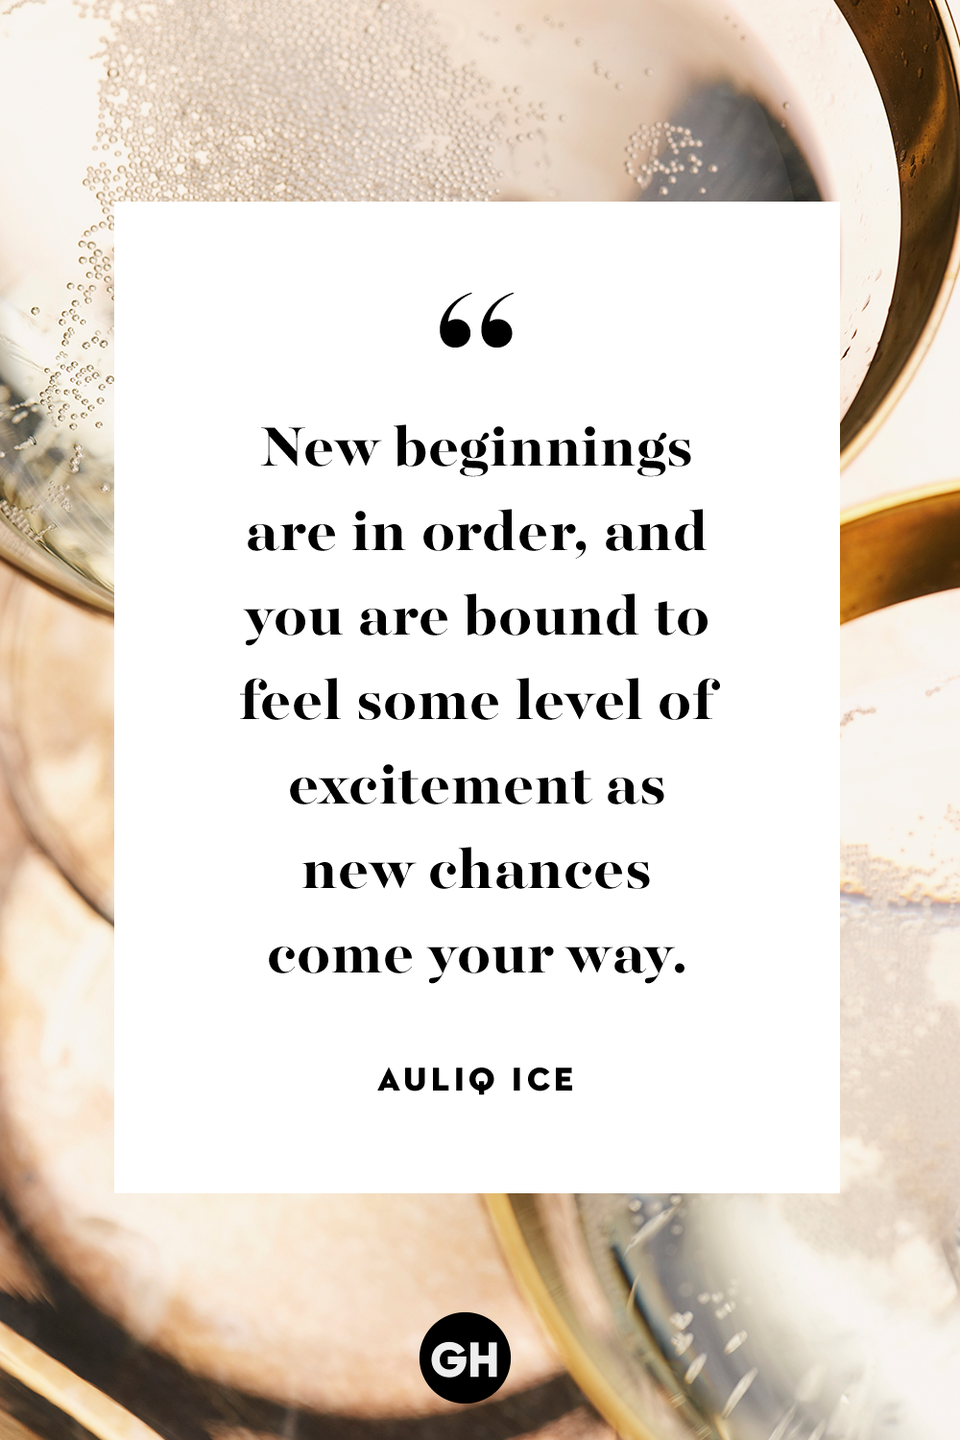 <p>New beginnings are in order, and you are bound to feel some level of excitement as new chances come your way.</p>